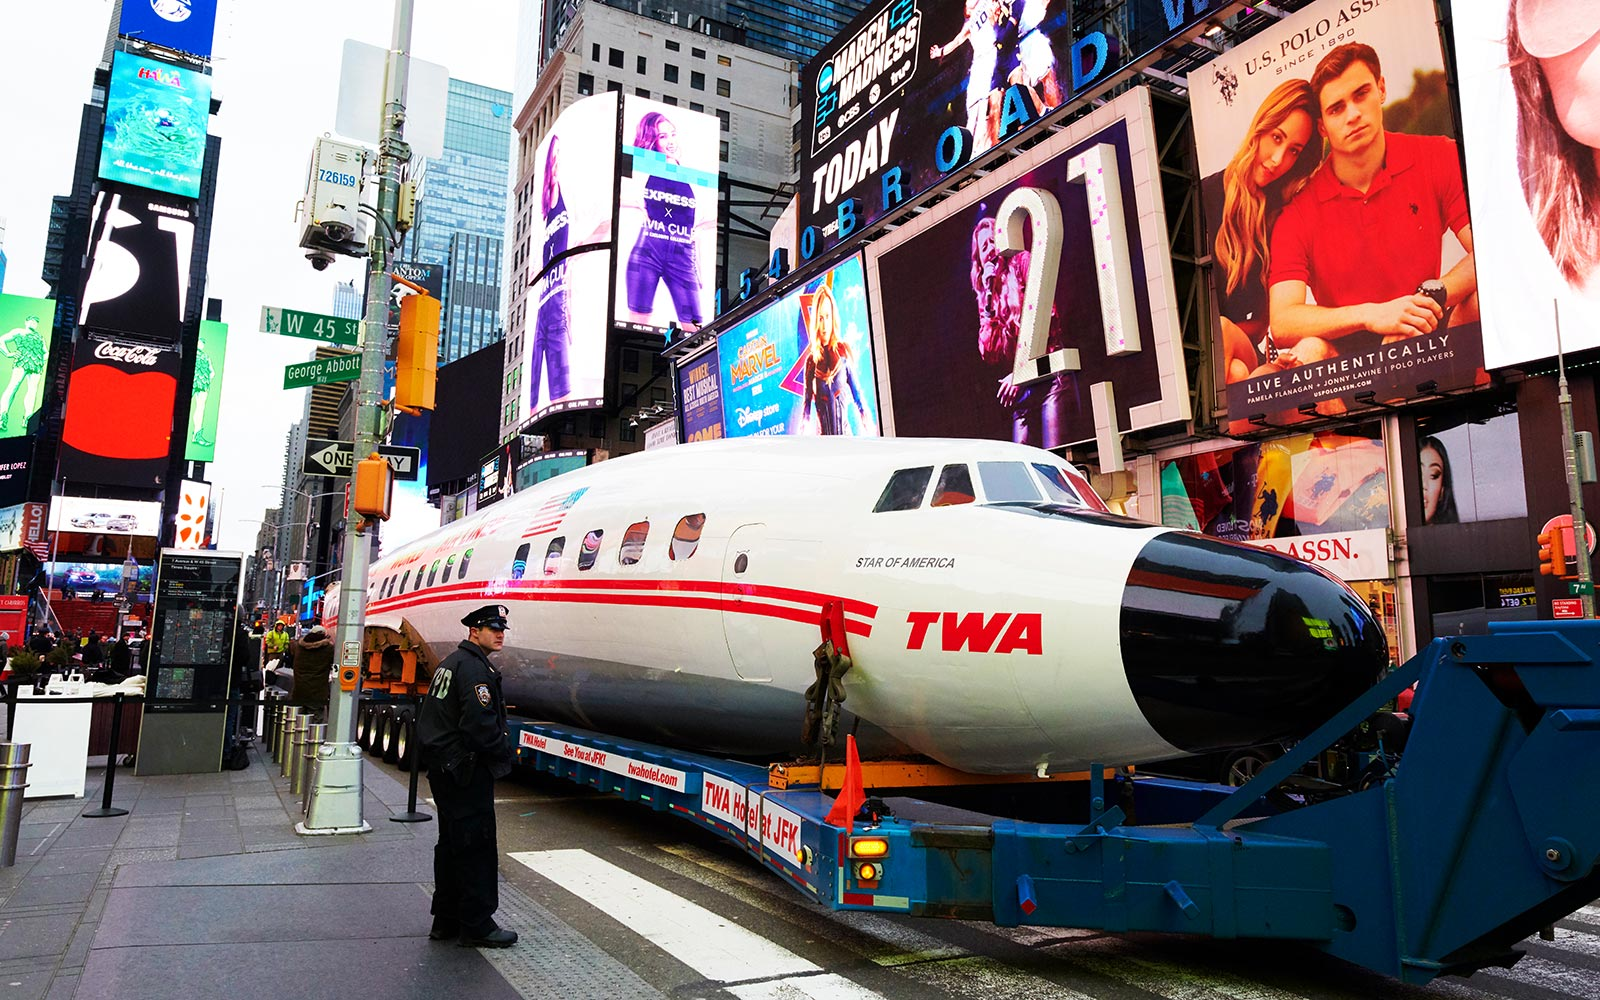 TWA Connie airplane